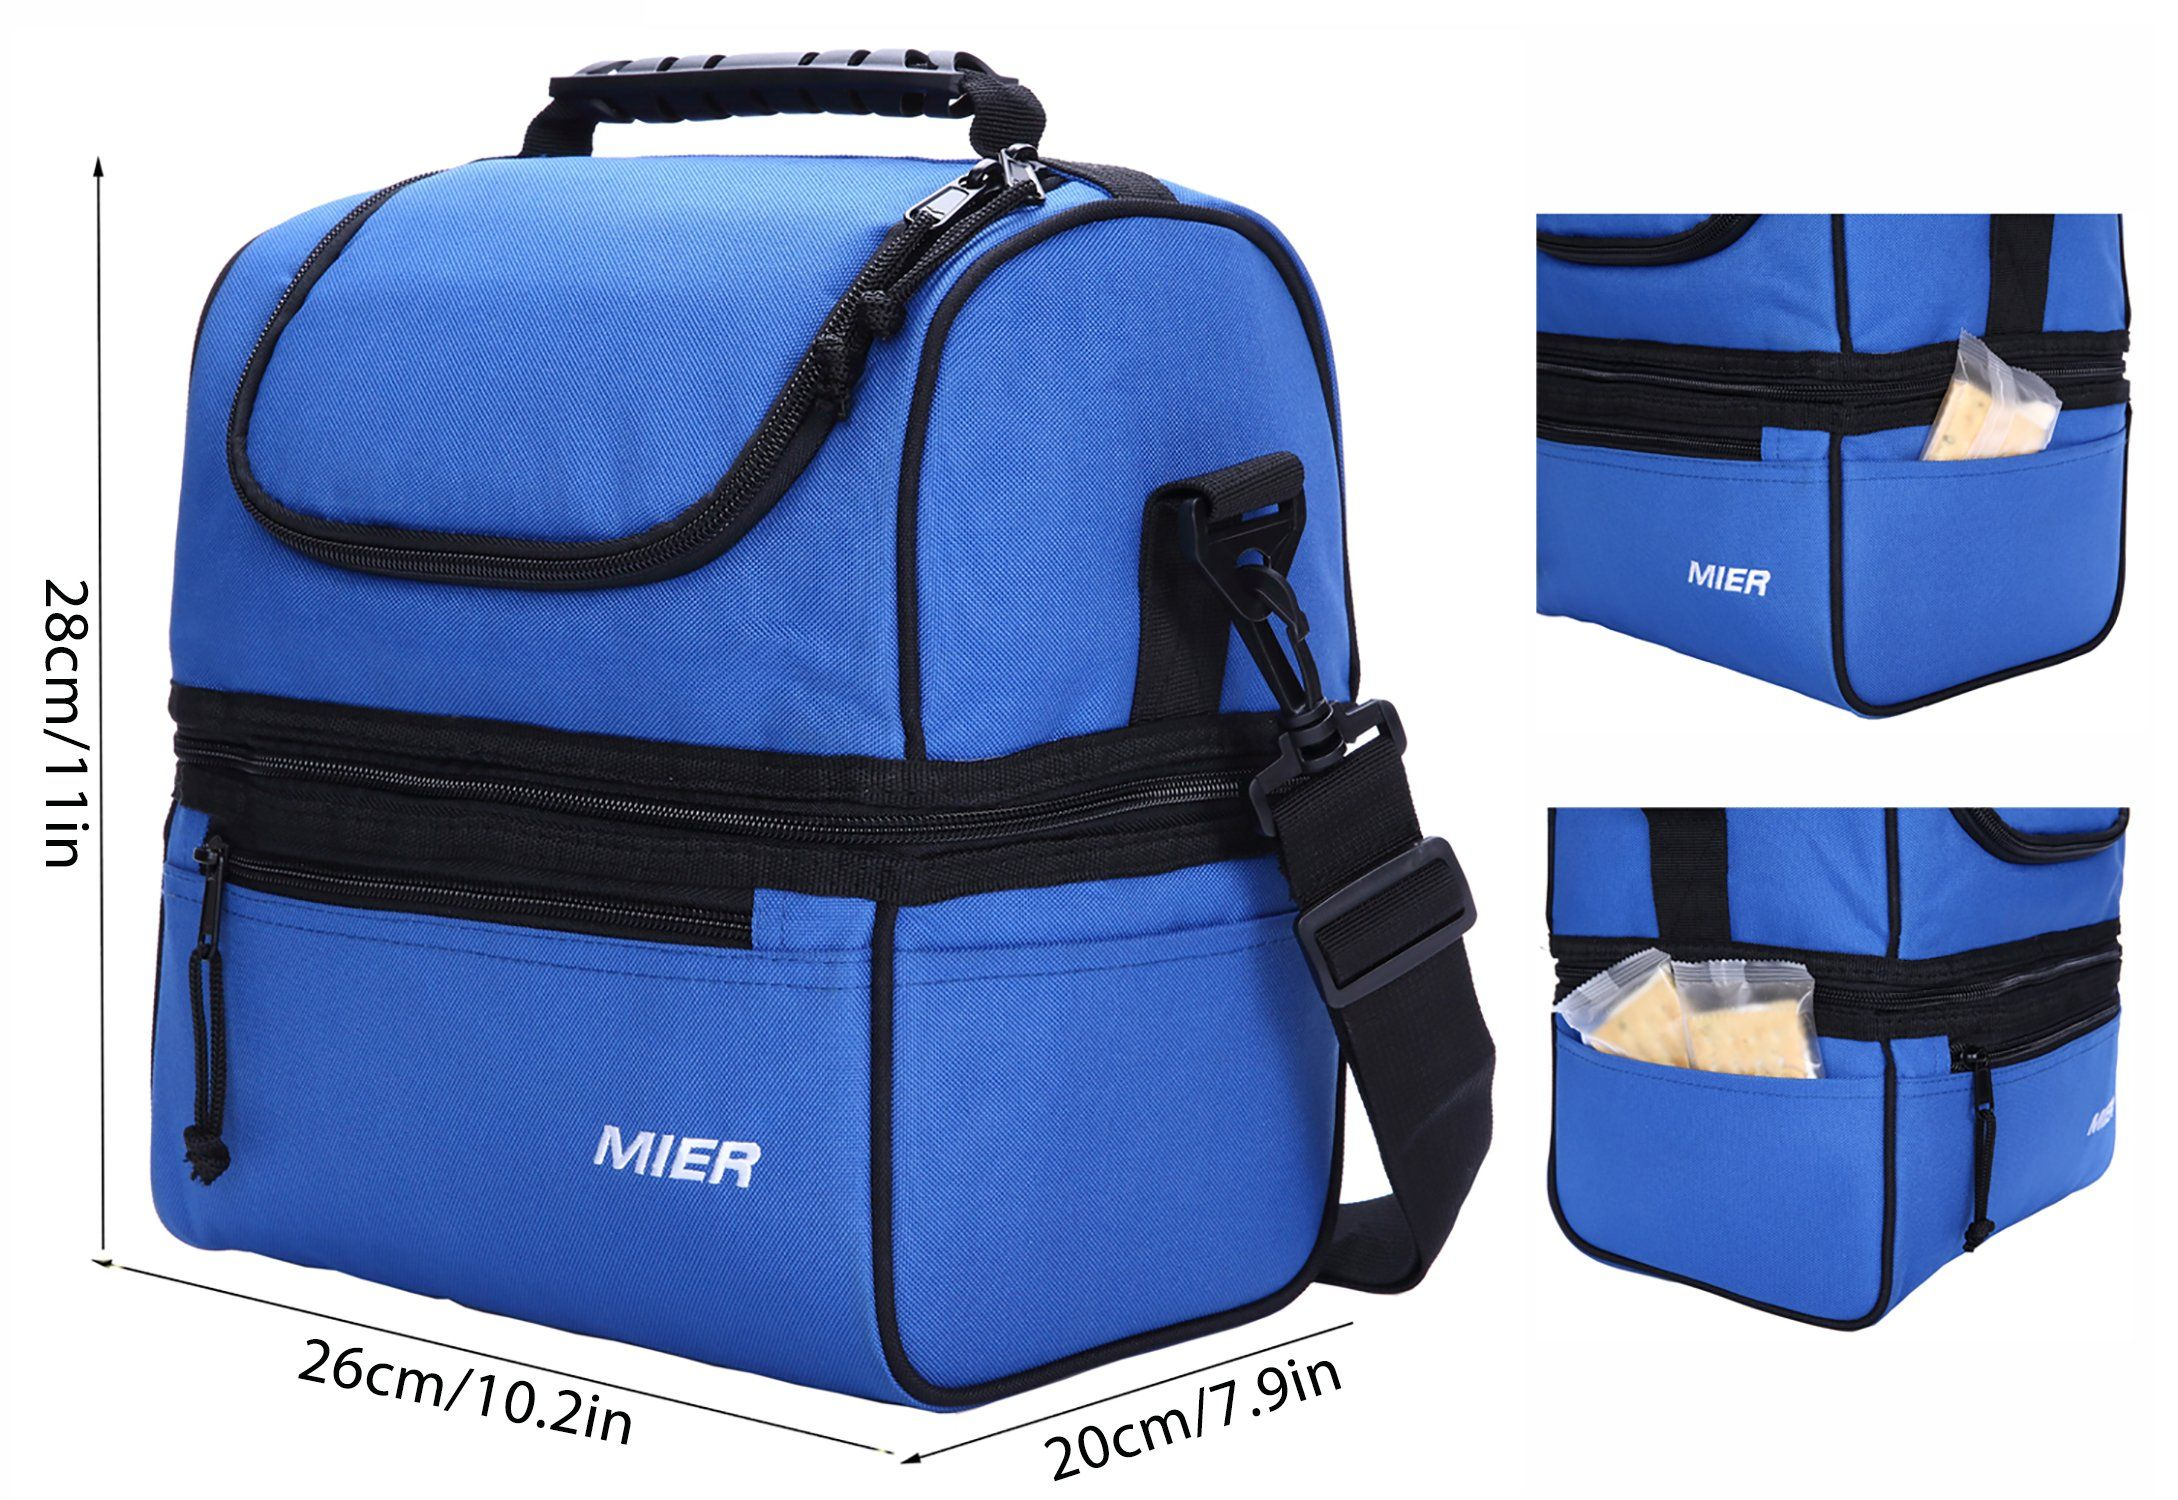 MIER Insulated Lunch Box Large Cool Tote Bag Kit for Men Women Double Deck..